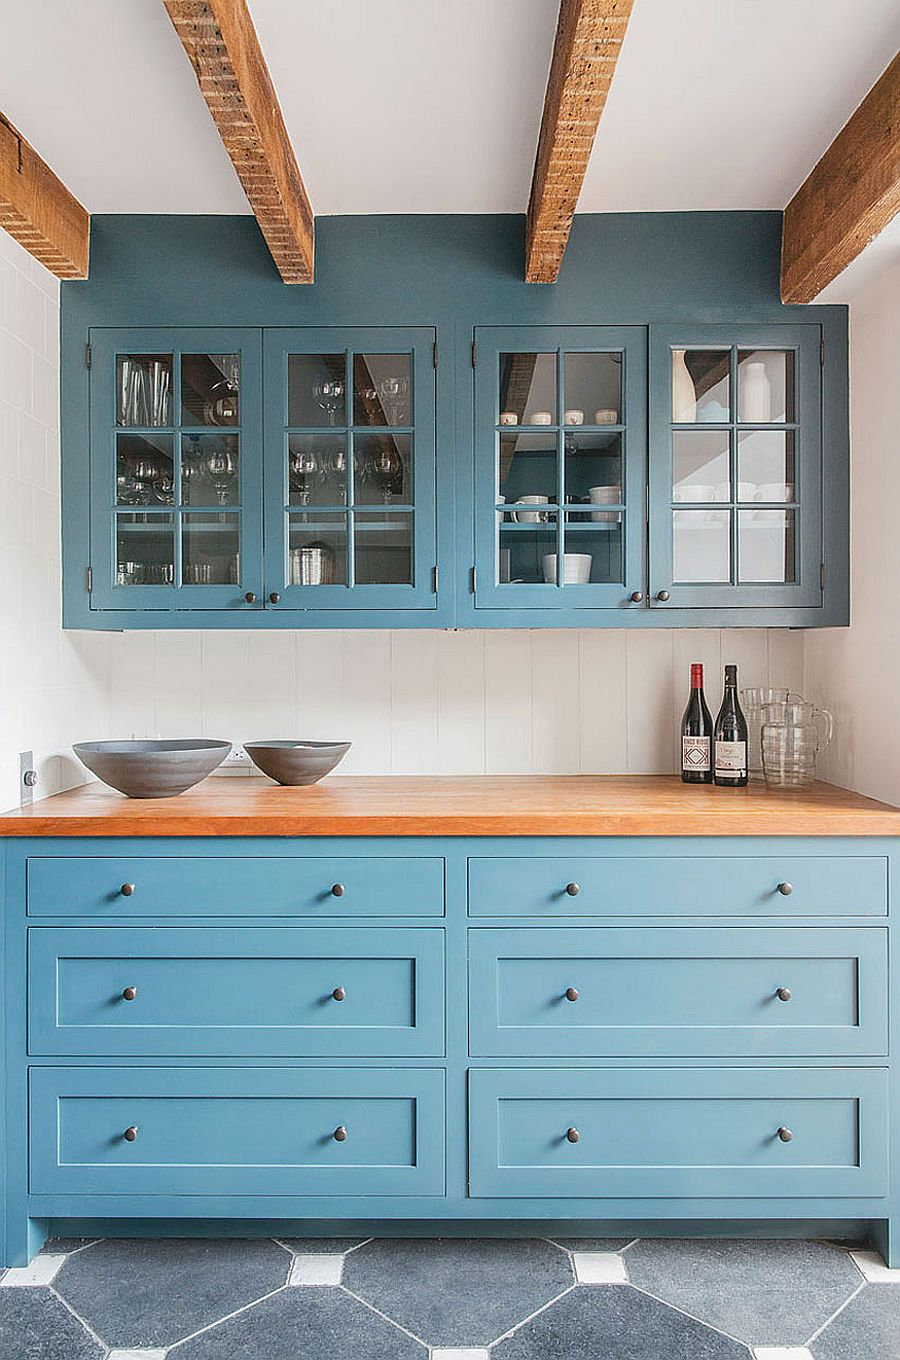 Custom kitchen cabinets in blue and wooden worktop